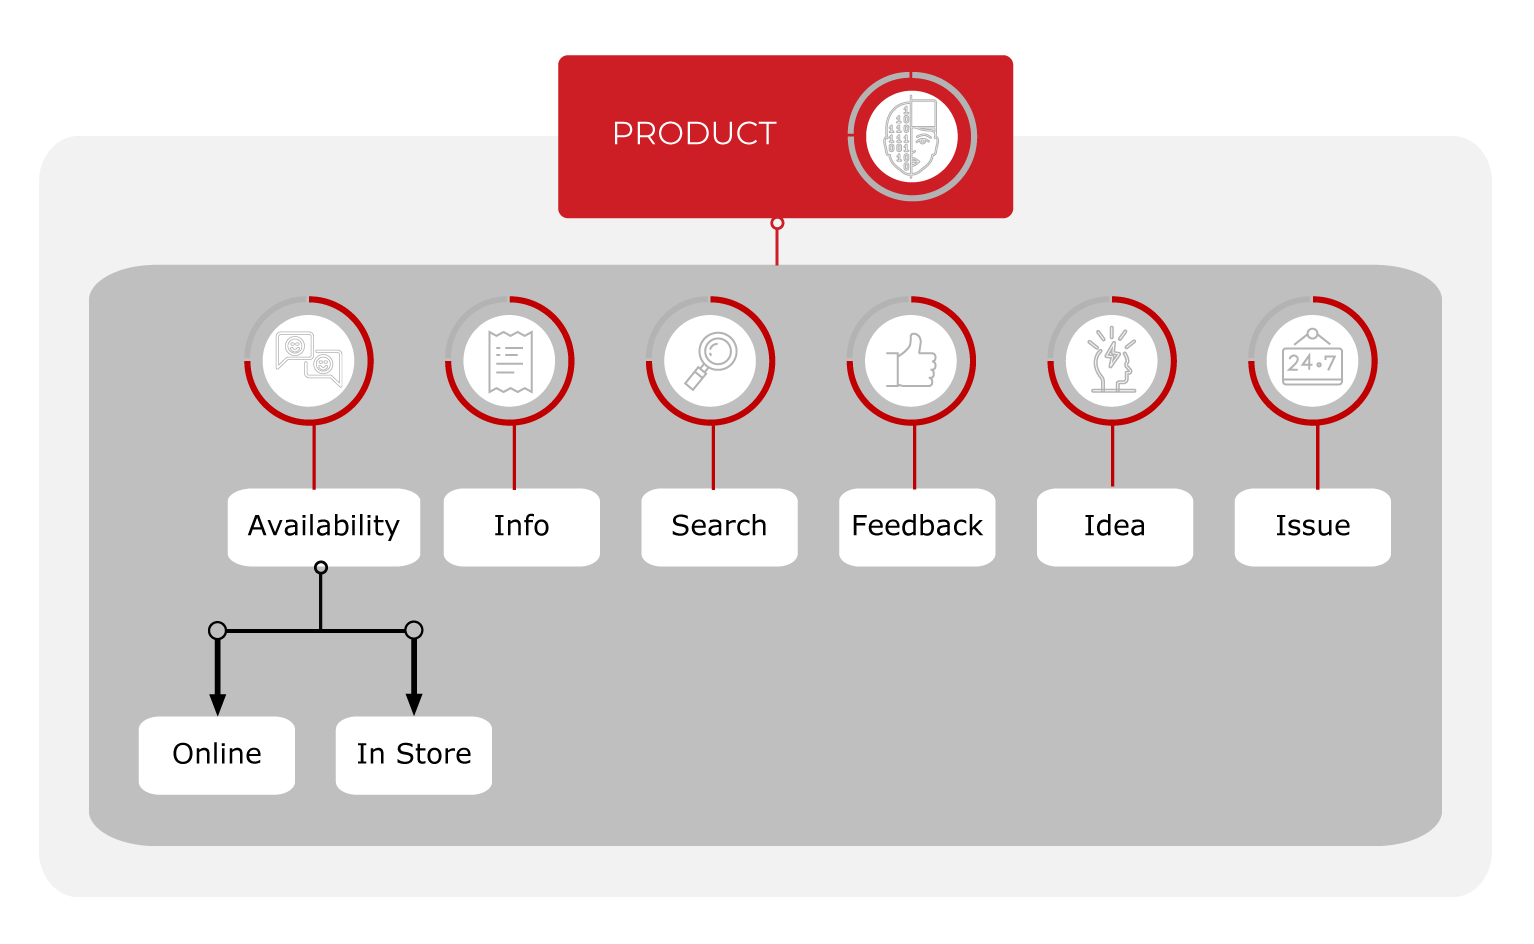 Retail-Vertical-Map-product-Chatbot-Bitext-Methodology-Machine-learning